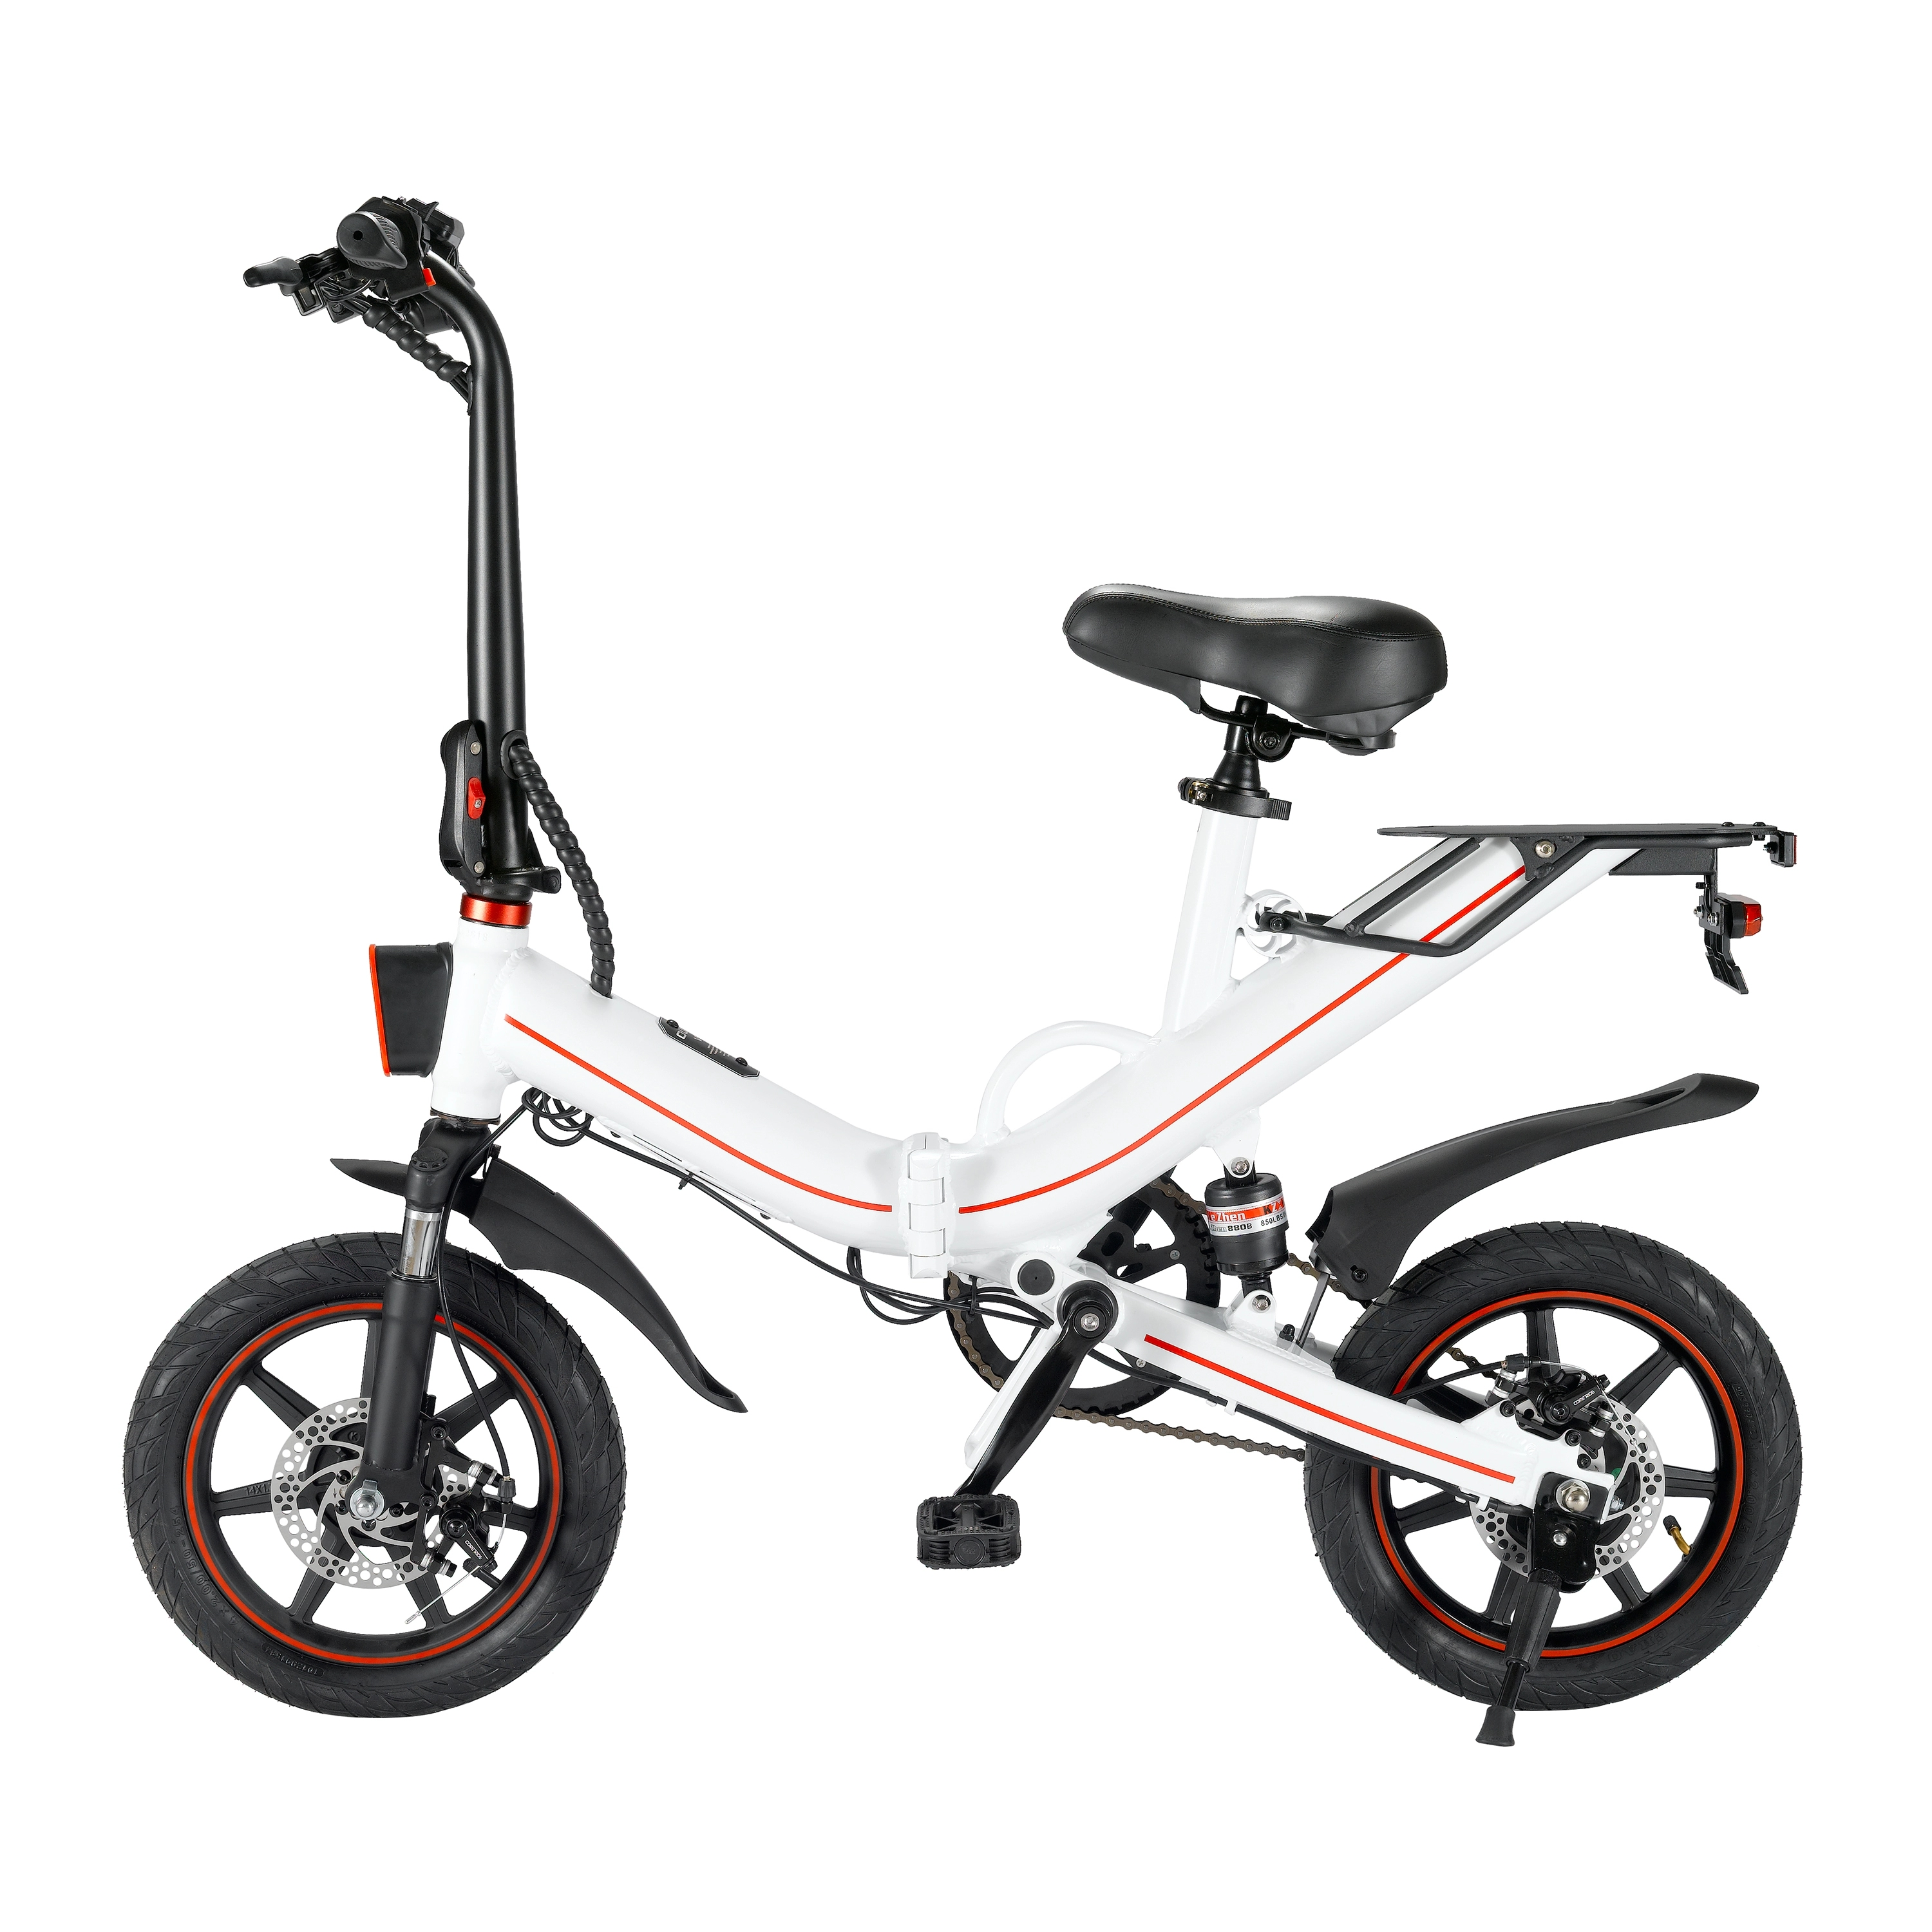 kit completo para bicicleta electrica 36-90 800w electric bicycle control electric bicycle used disc brake electric bicycle